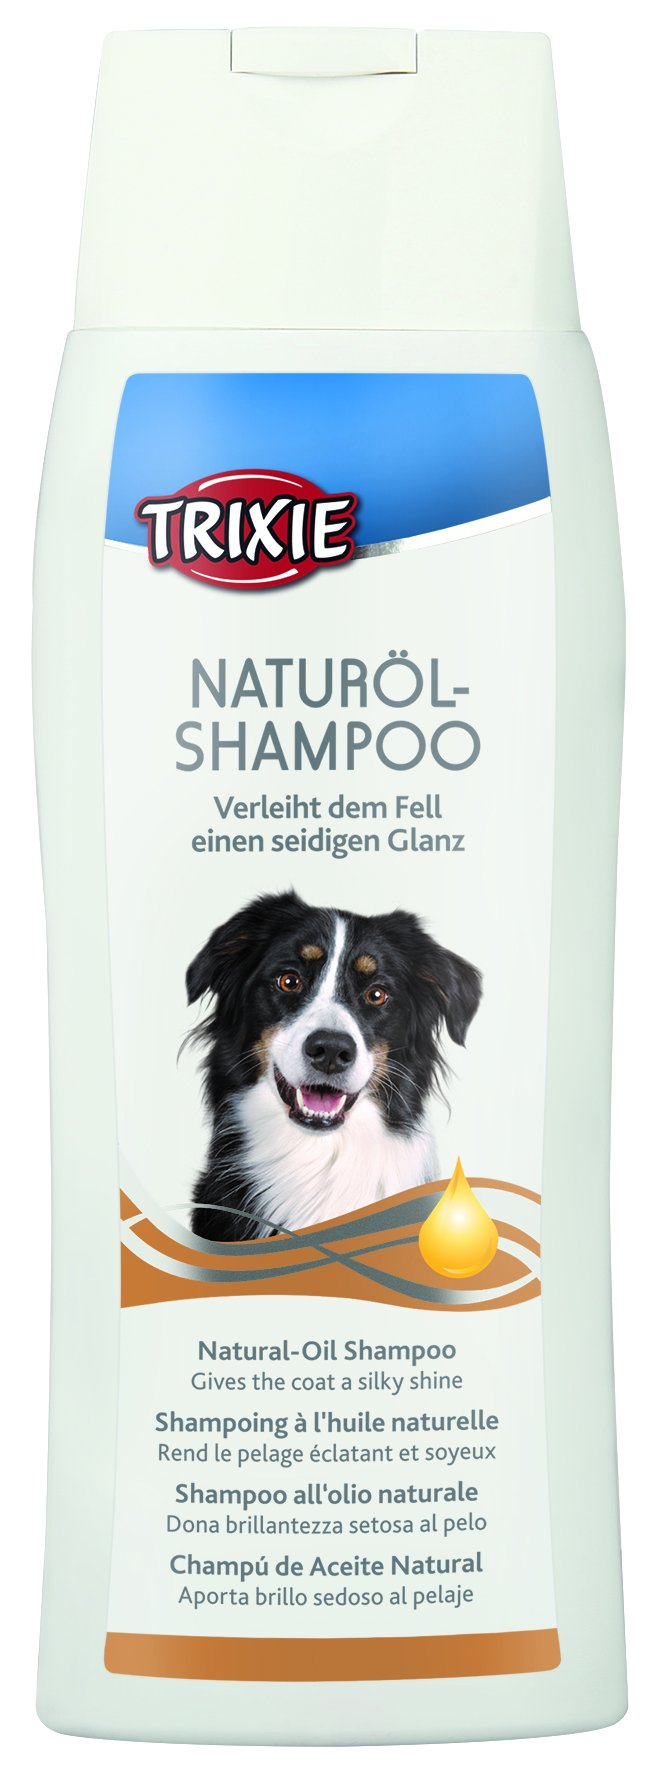 29195 Natural-oil shampoo, 250 ml